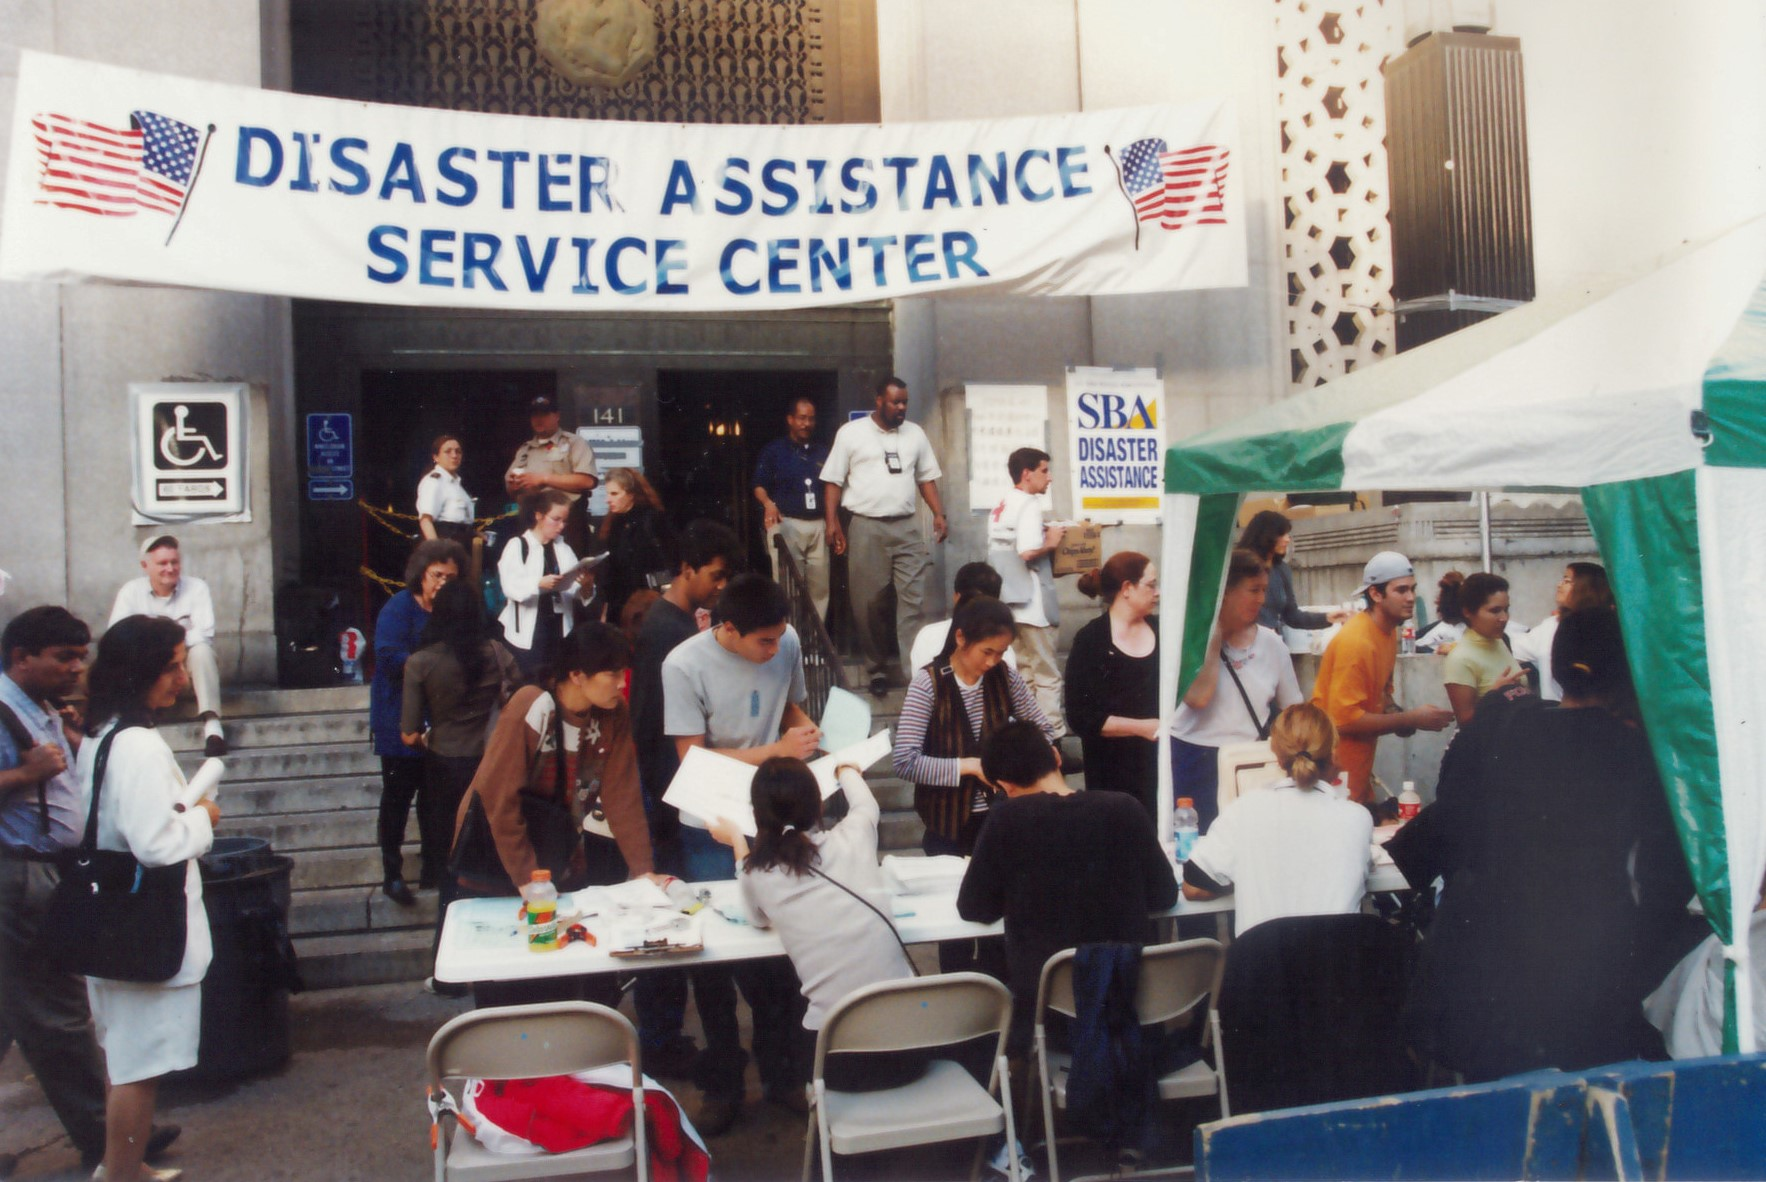 Legal Aid Society offering legal services after 9/11